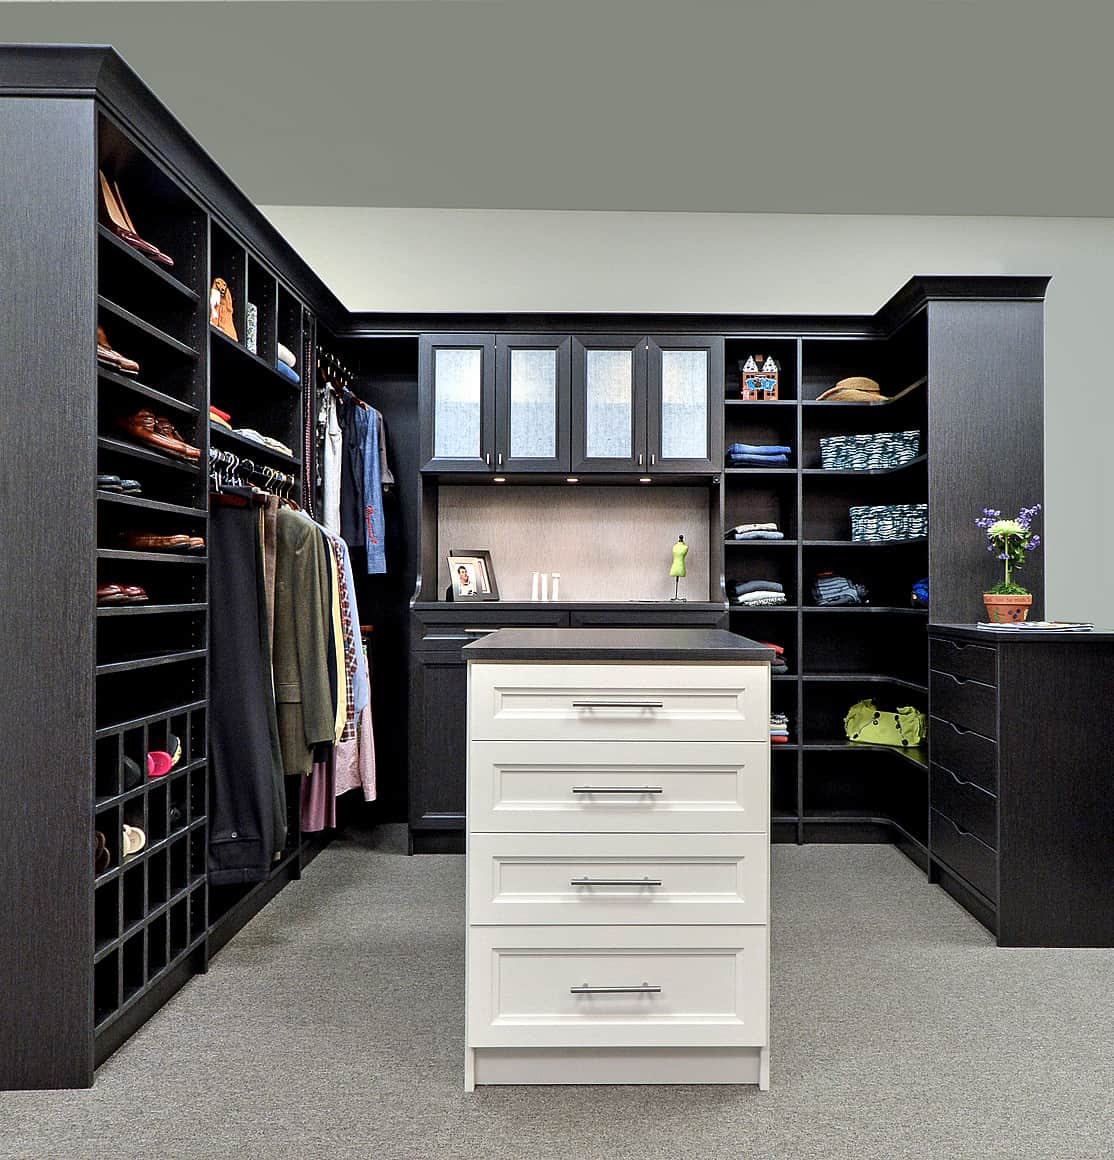 Closet with dark wood cabinetry, open shelving, built-in desk and an island.